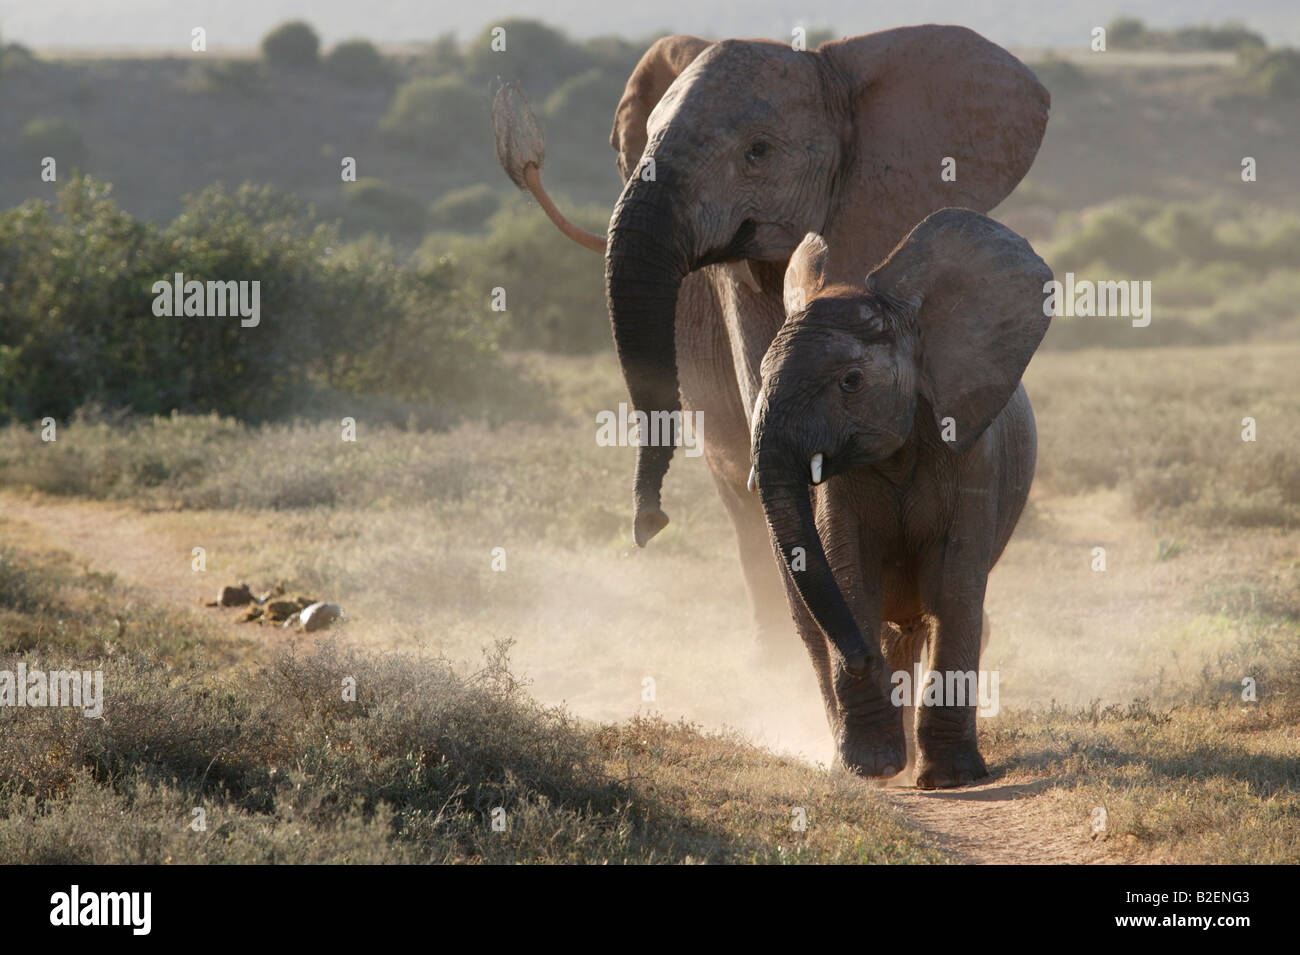 A frontal view of two elephants in an aggressive pose - Stock Image